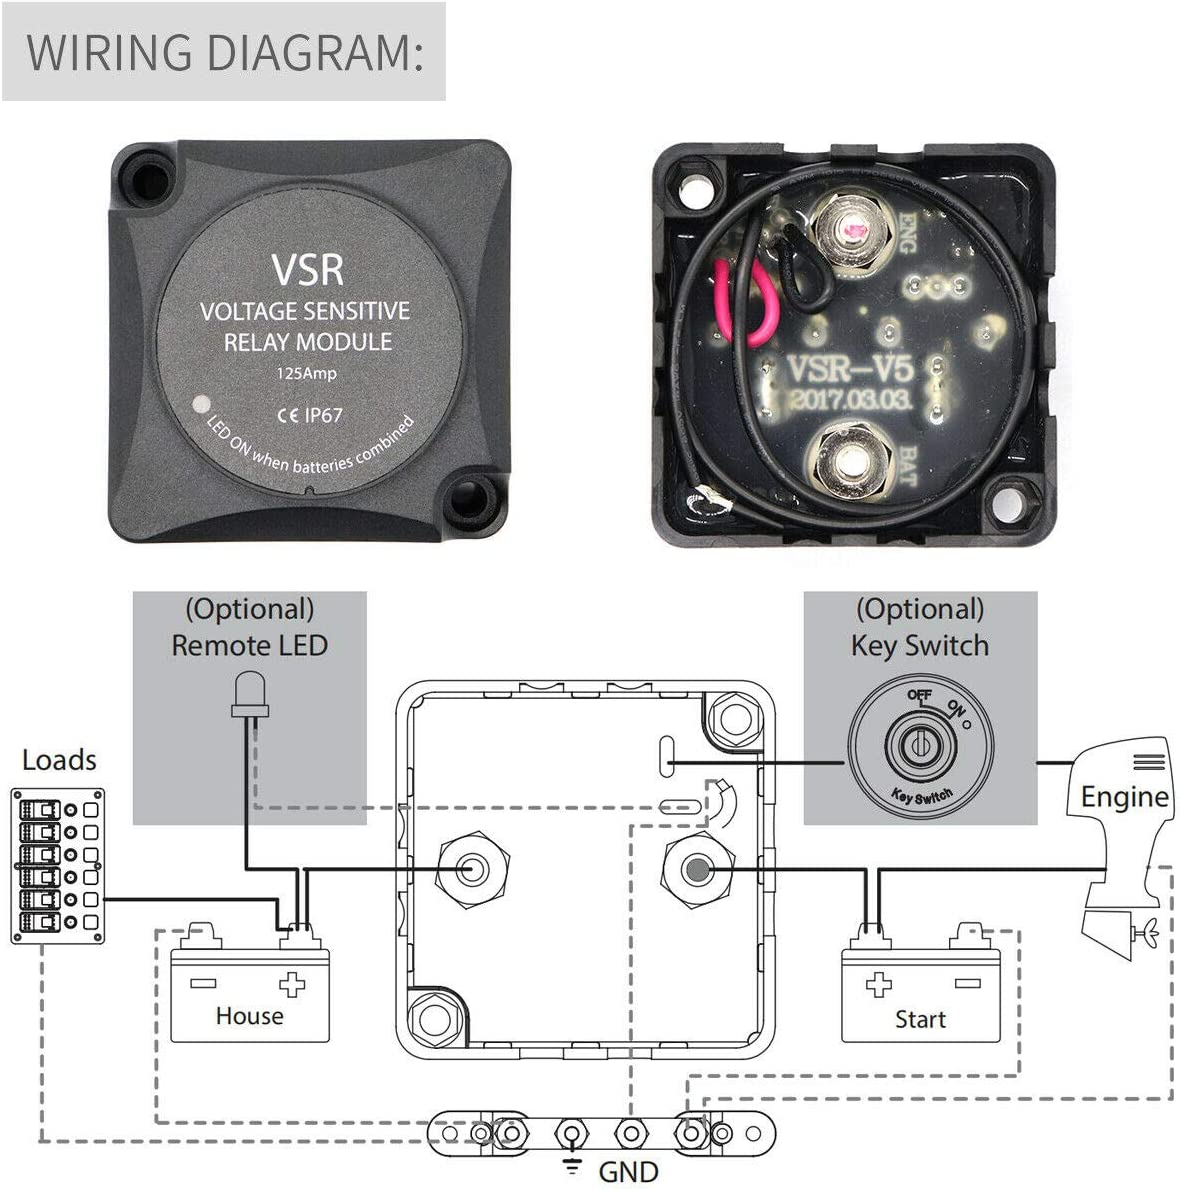 12V 140Amp jamgoer Car Dual Battery System Isolator Voltage Sensitive Relay /& Wiring Cable Kit Heavy Duty VSR